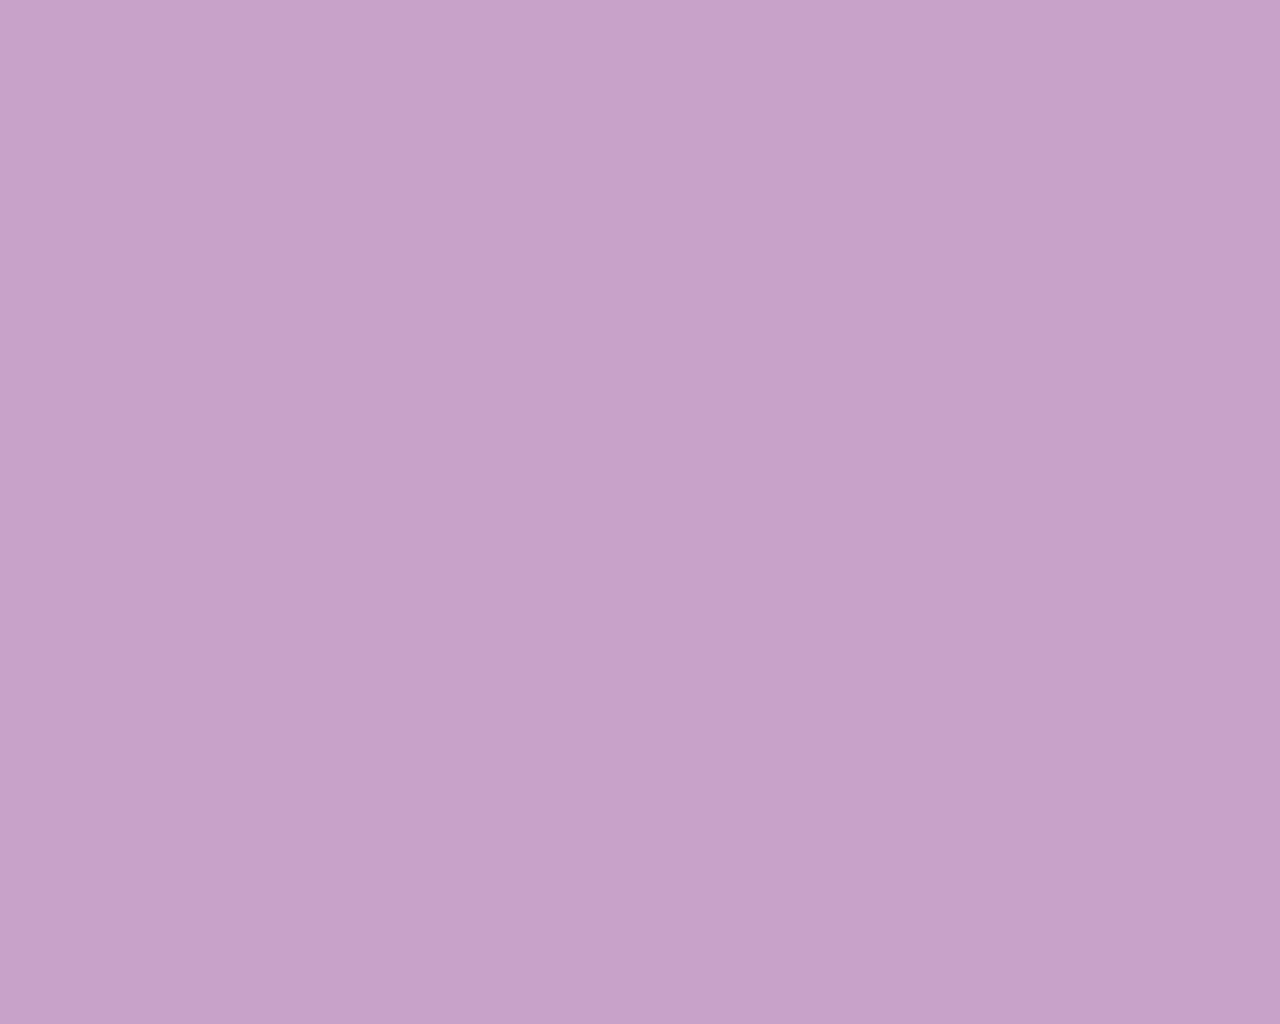 1280x1024 Lilac Solid Color Background